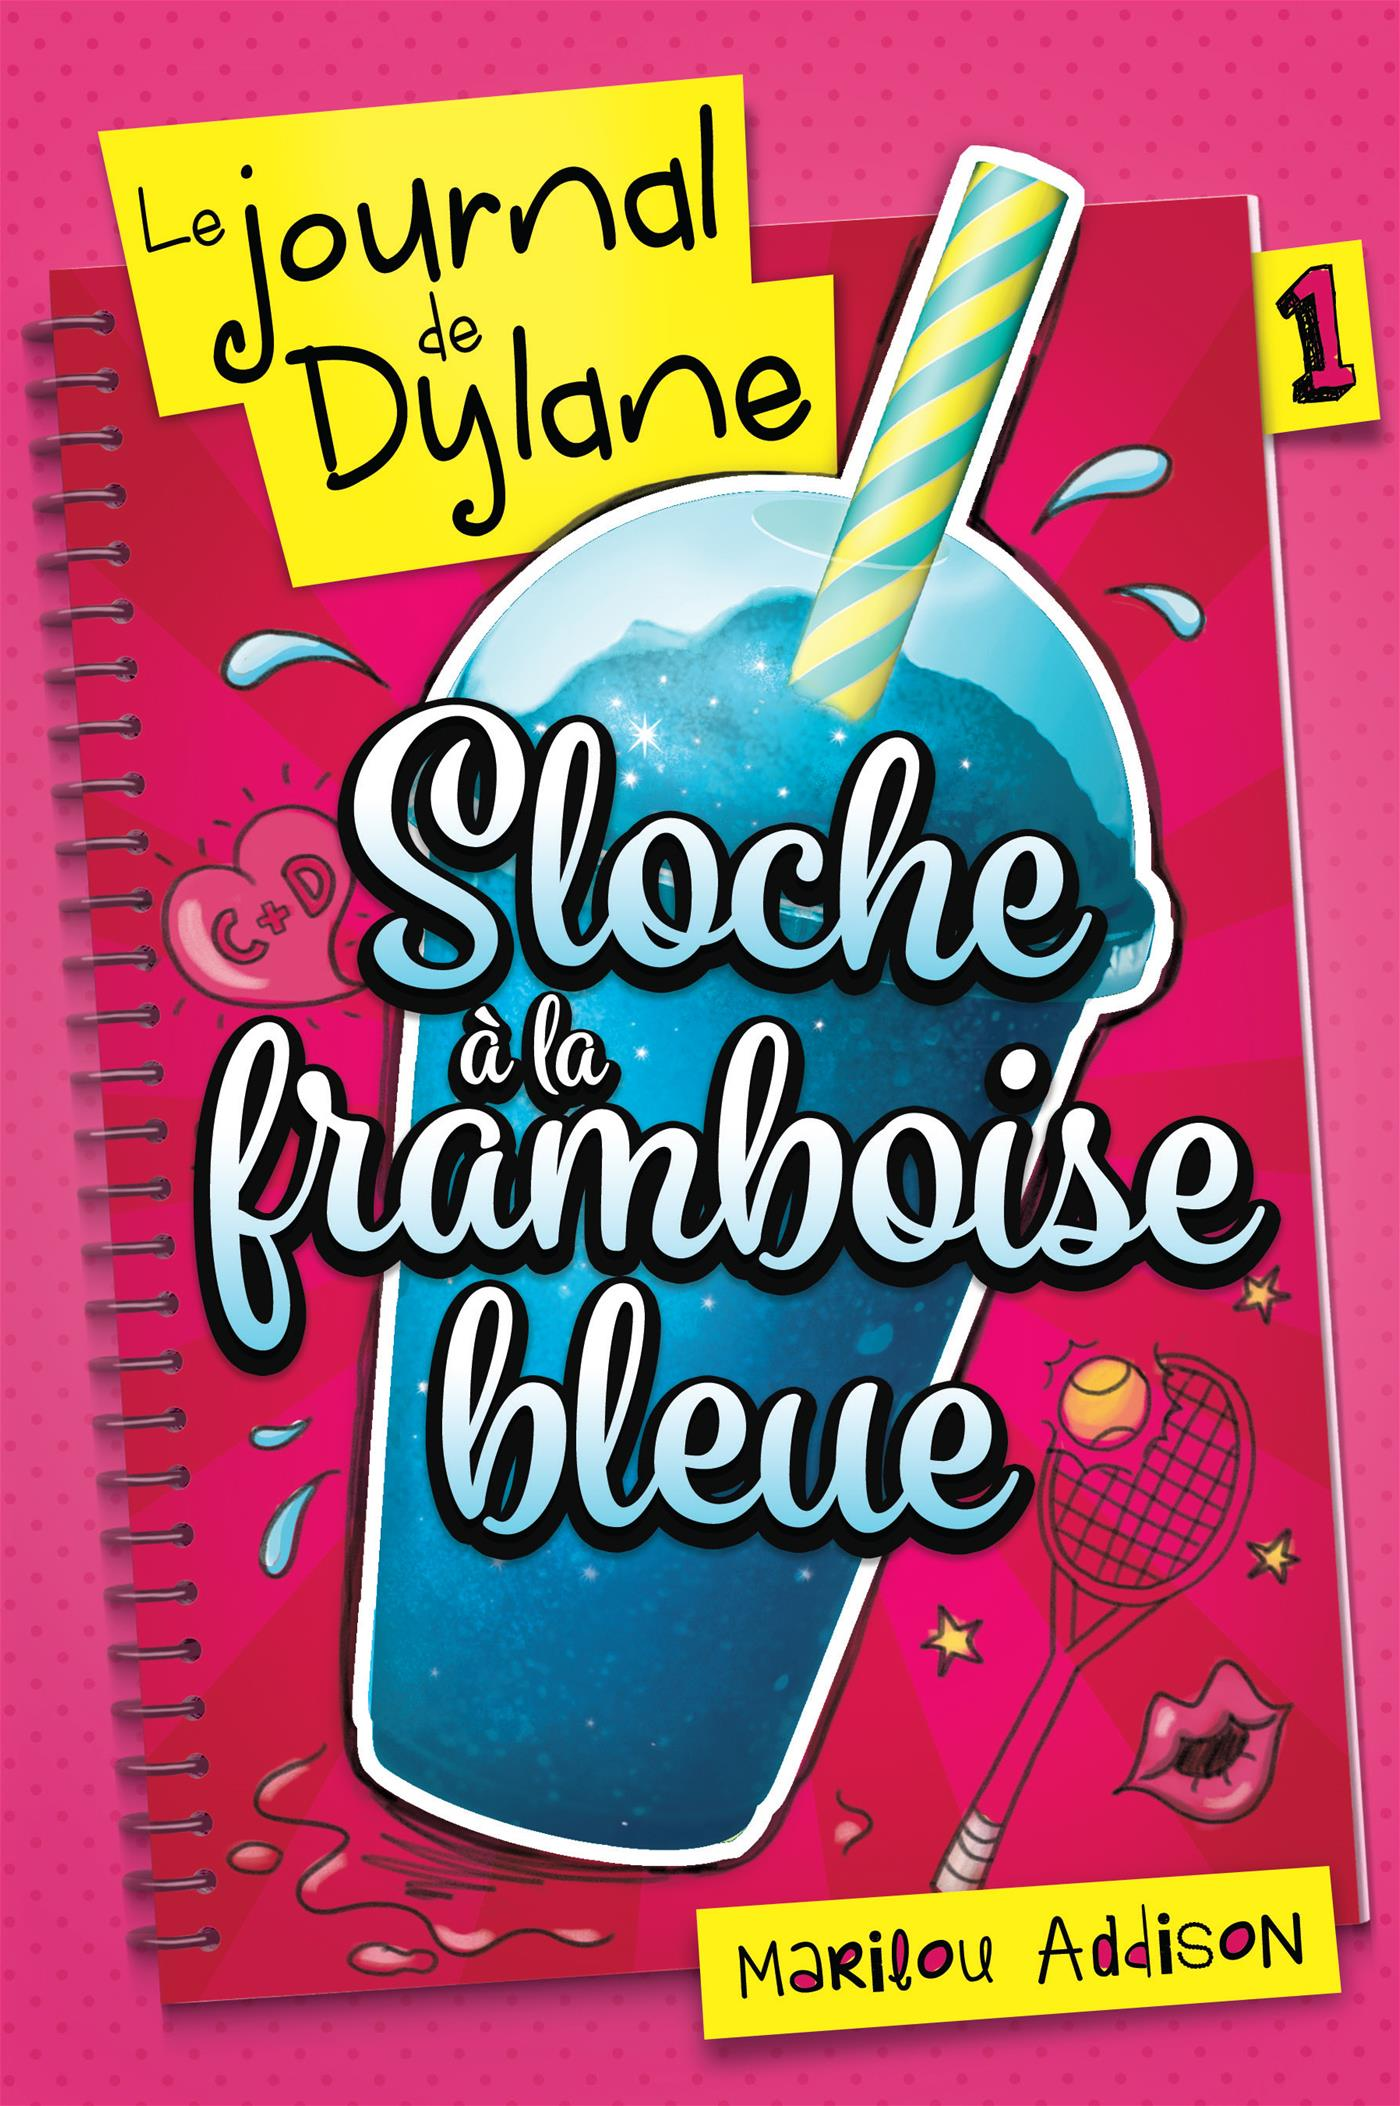 Le journal de dylane une sloche la framboise bleue for Magazine le journal de la maison